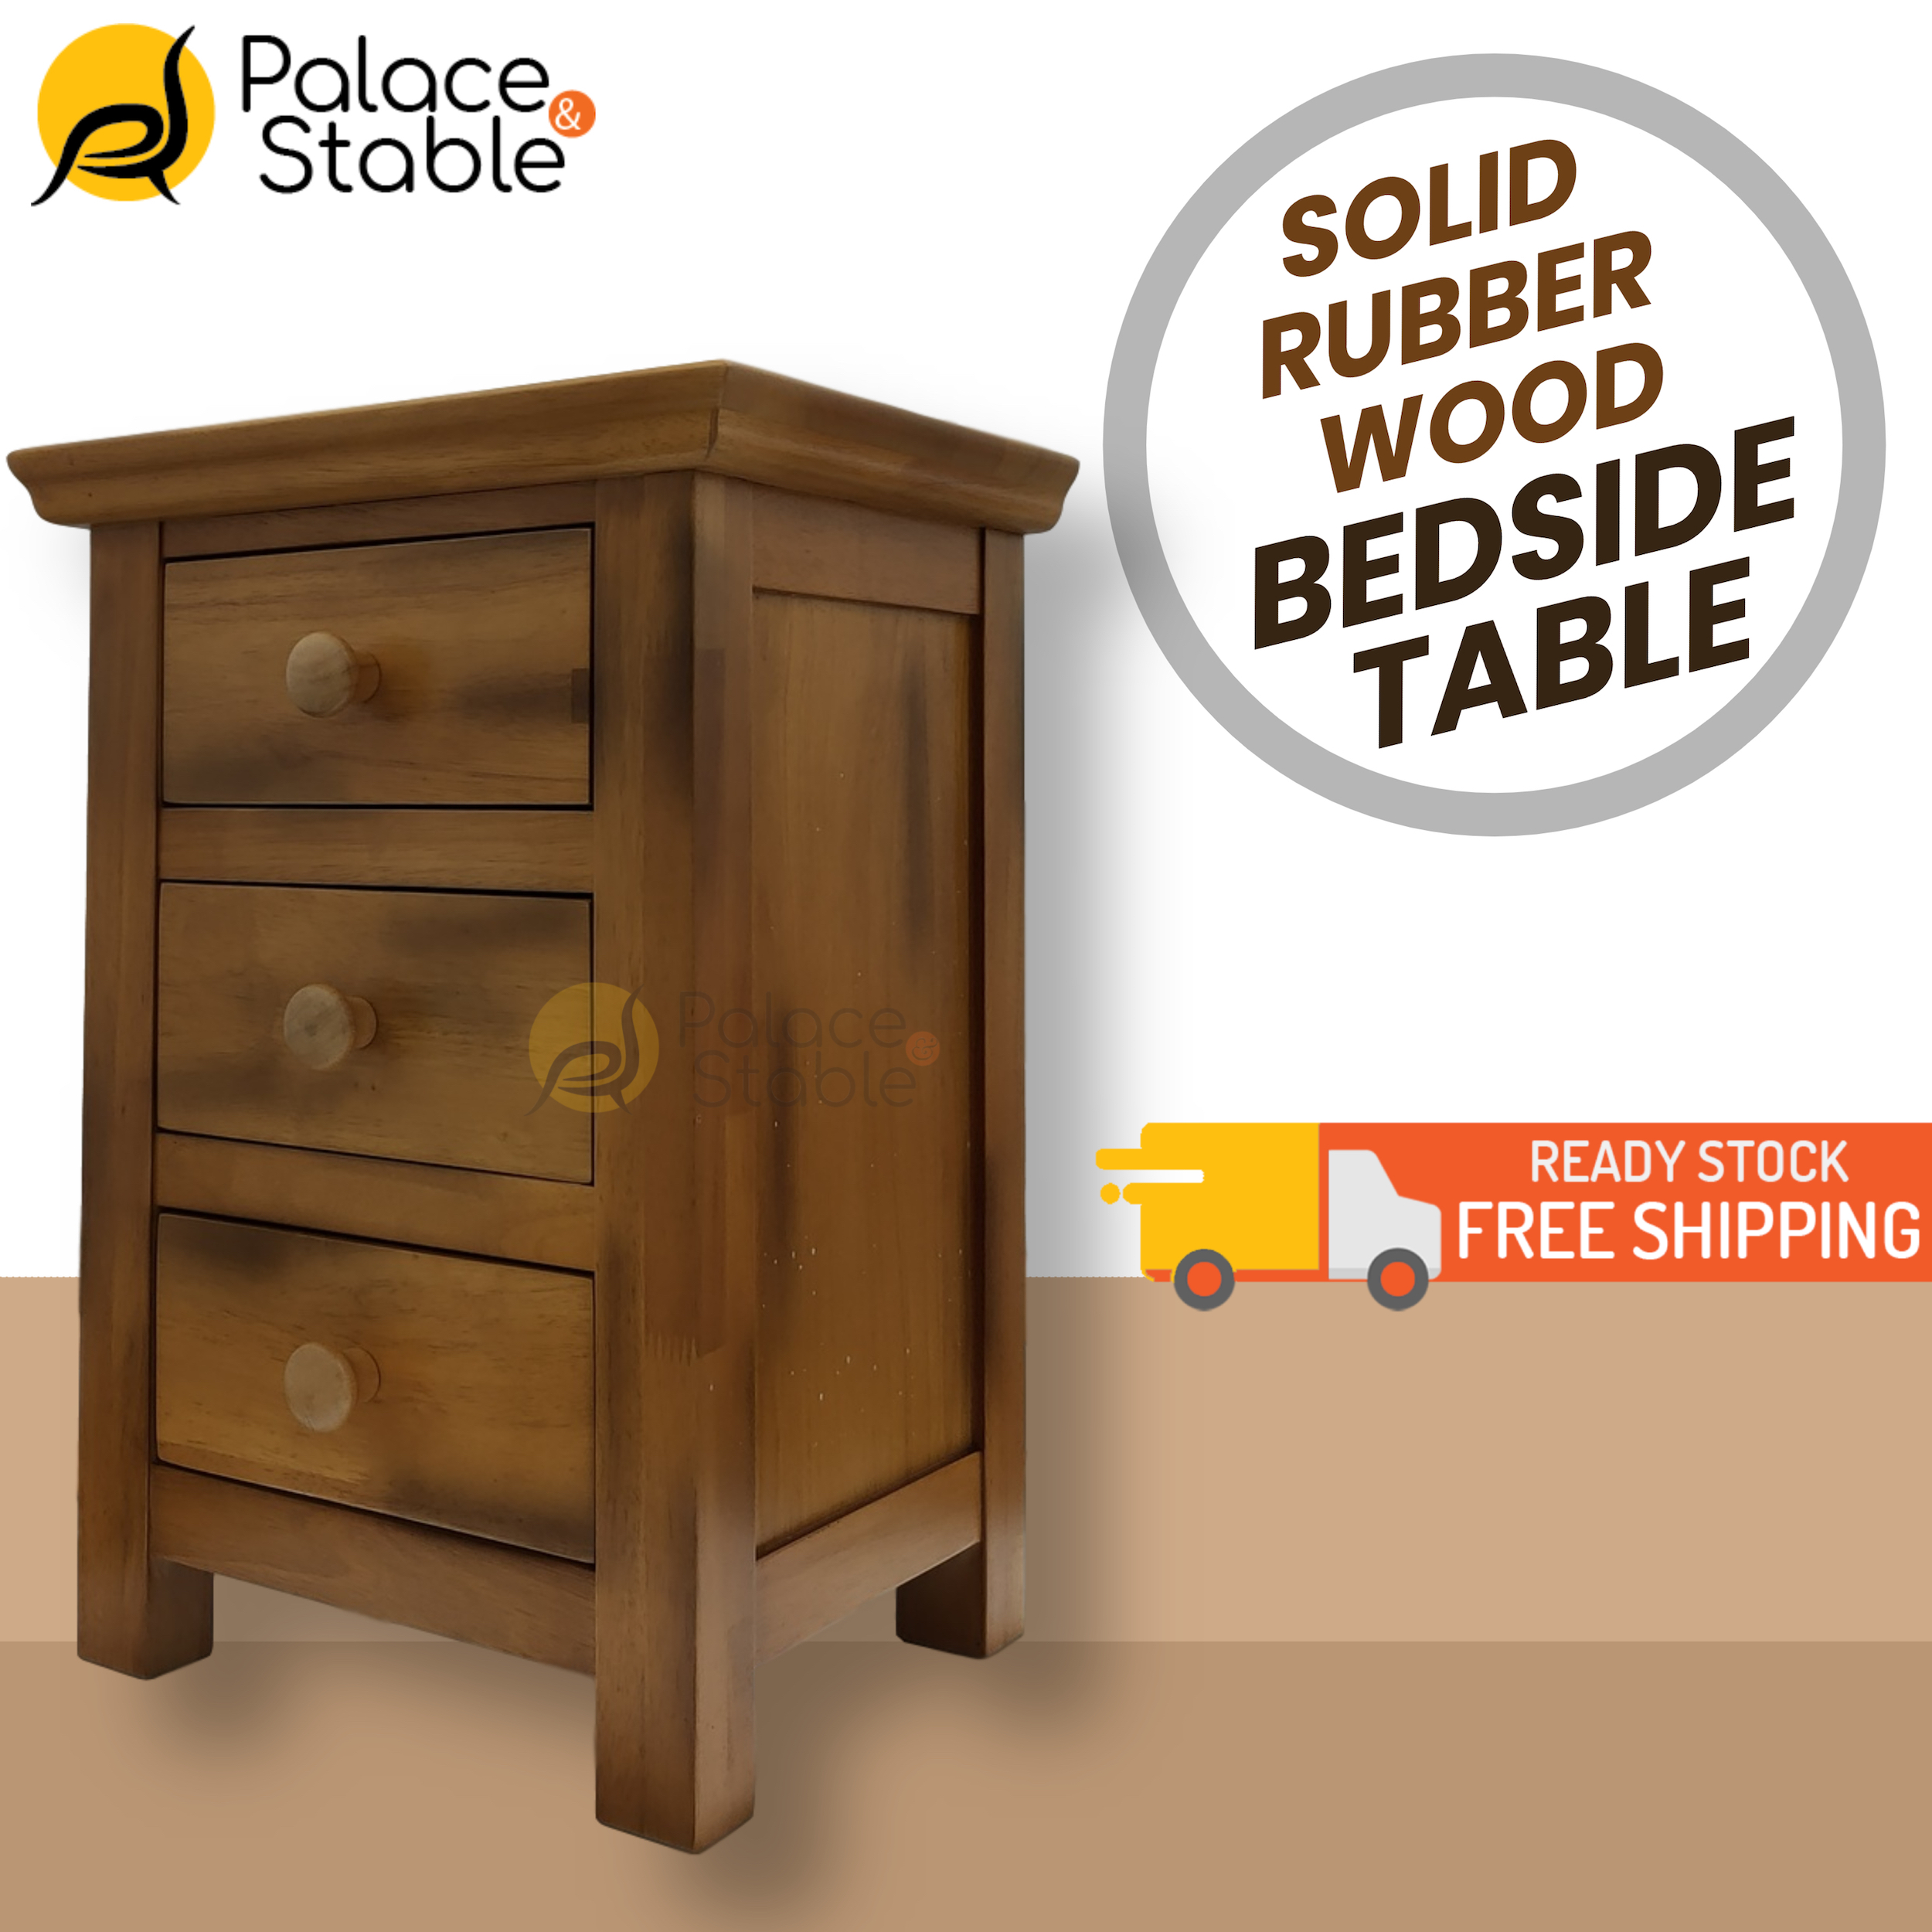 BALI, Solid Rubber Wood Bedside Table